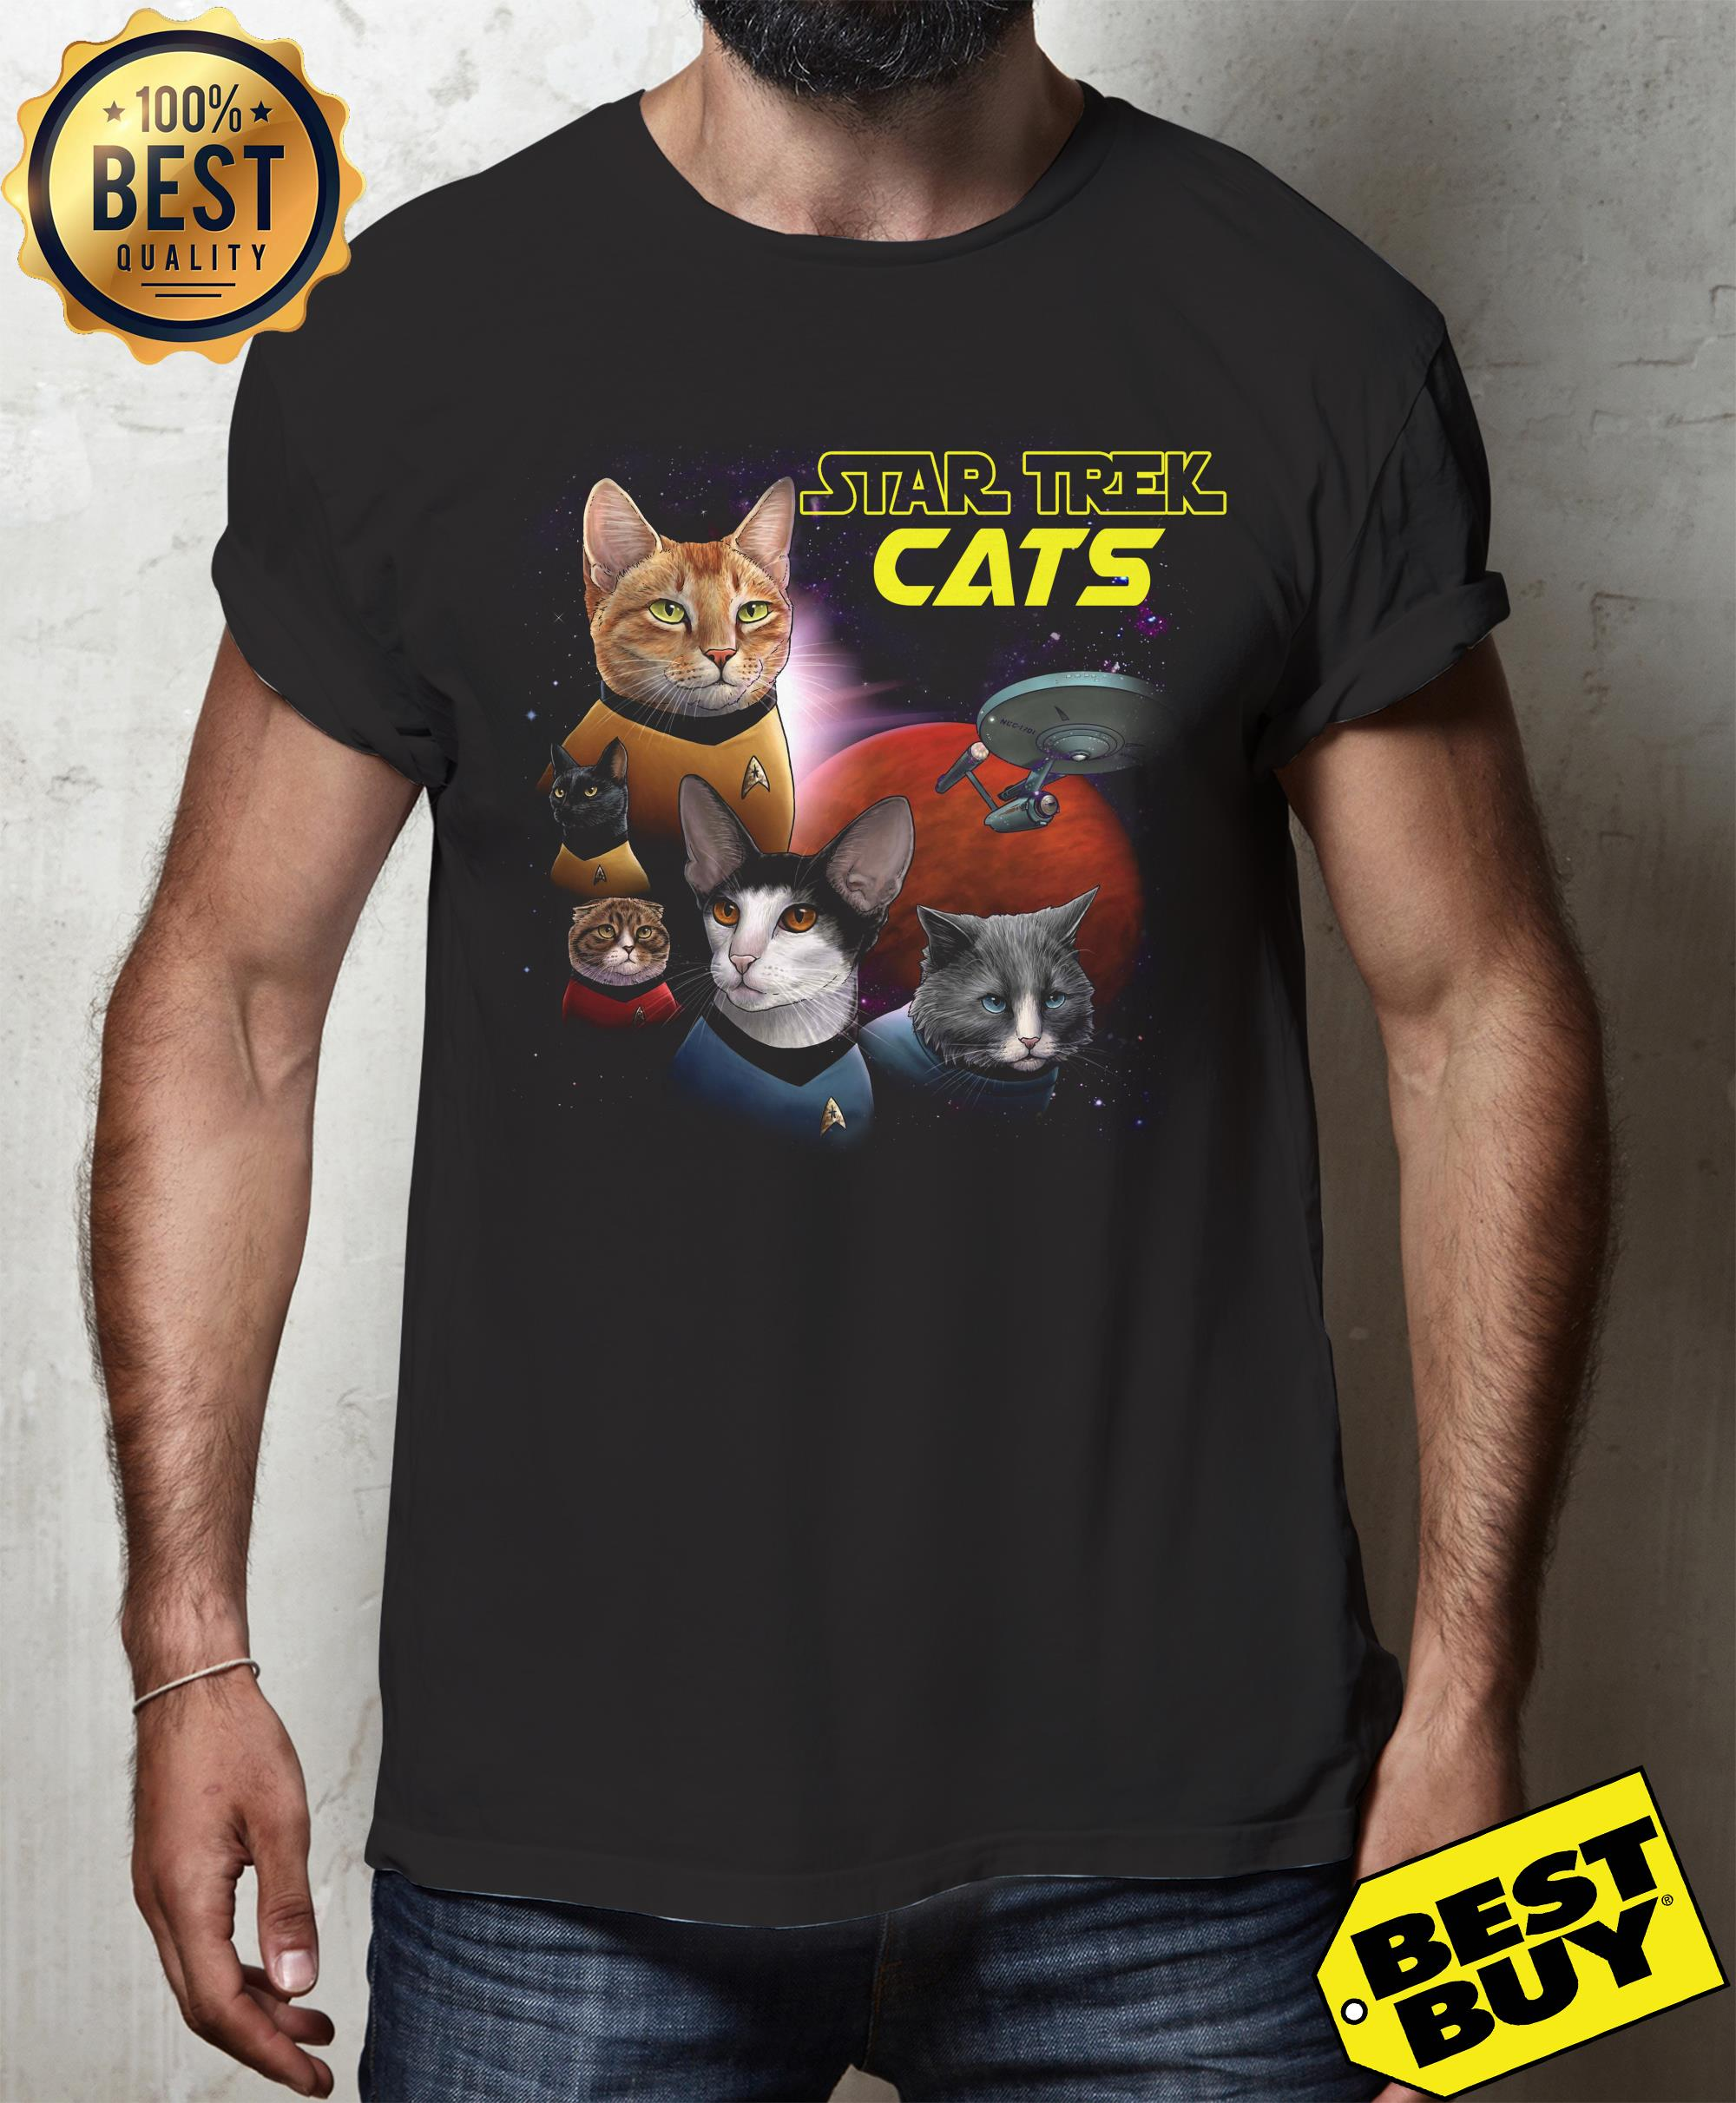 Star Trek Cats Books And Merch v-neck